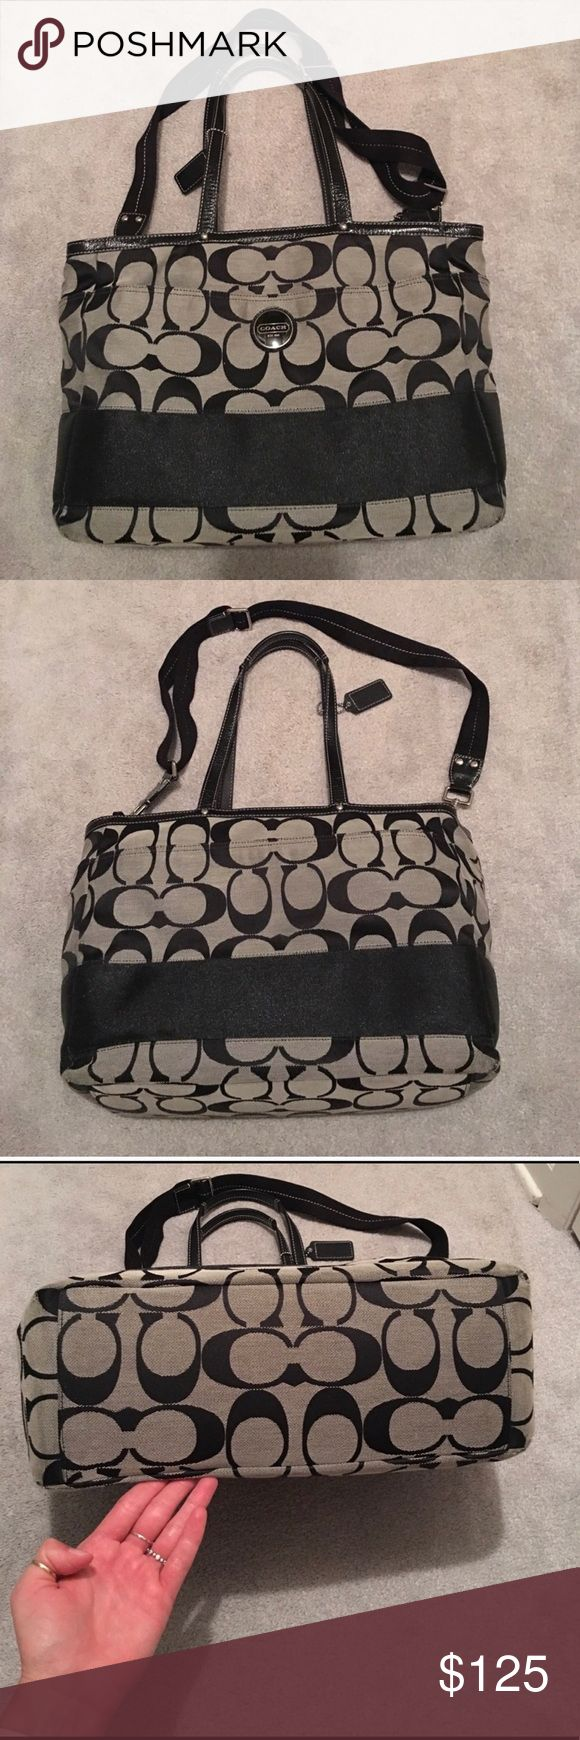 Coach Tote Bag Coach tote bag - great condition minus some wear around corners and on strap as seen in last picture. Has front and back pockets. Long strap as well as short strap. Has inside compartment and one zippered compartment. 15in Wide x 11in Height x 6in Deep. Would make a great purse, tote bag, school bag or diaper bag. Coach Bags